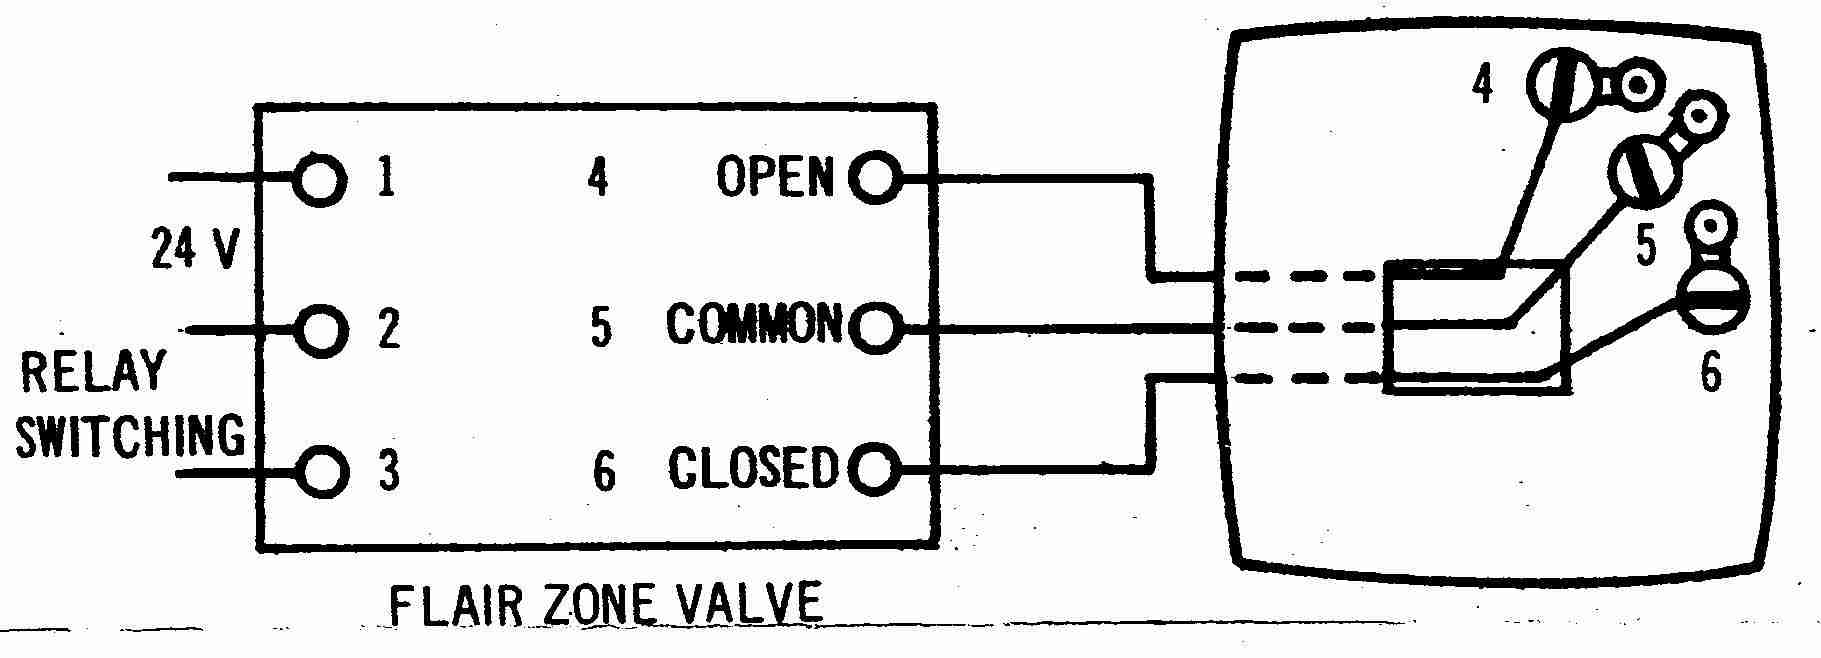 room thermostat wiring diagrams for hvac systems 2wire thermostat wiring diagram flair 3 wire thermostat wiring controlling a zone valve